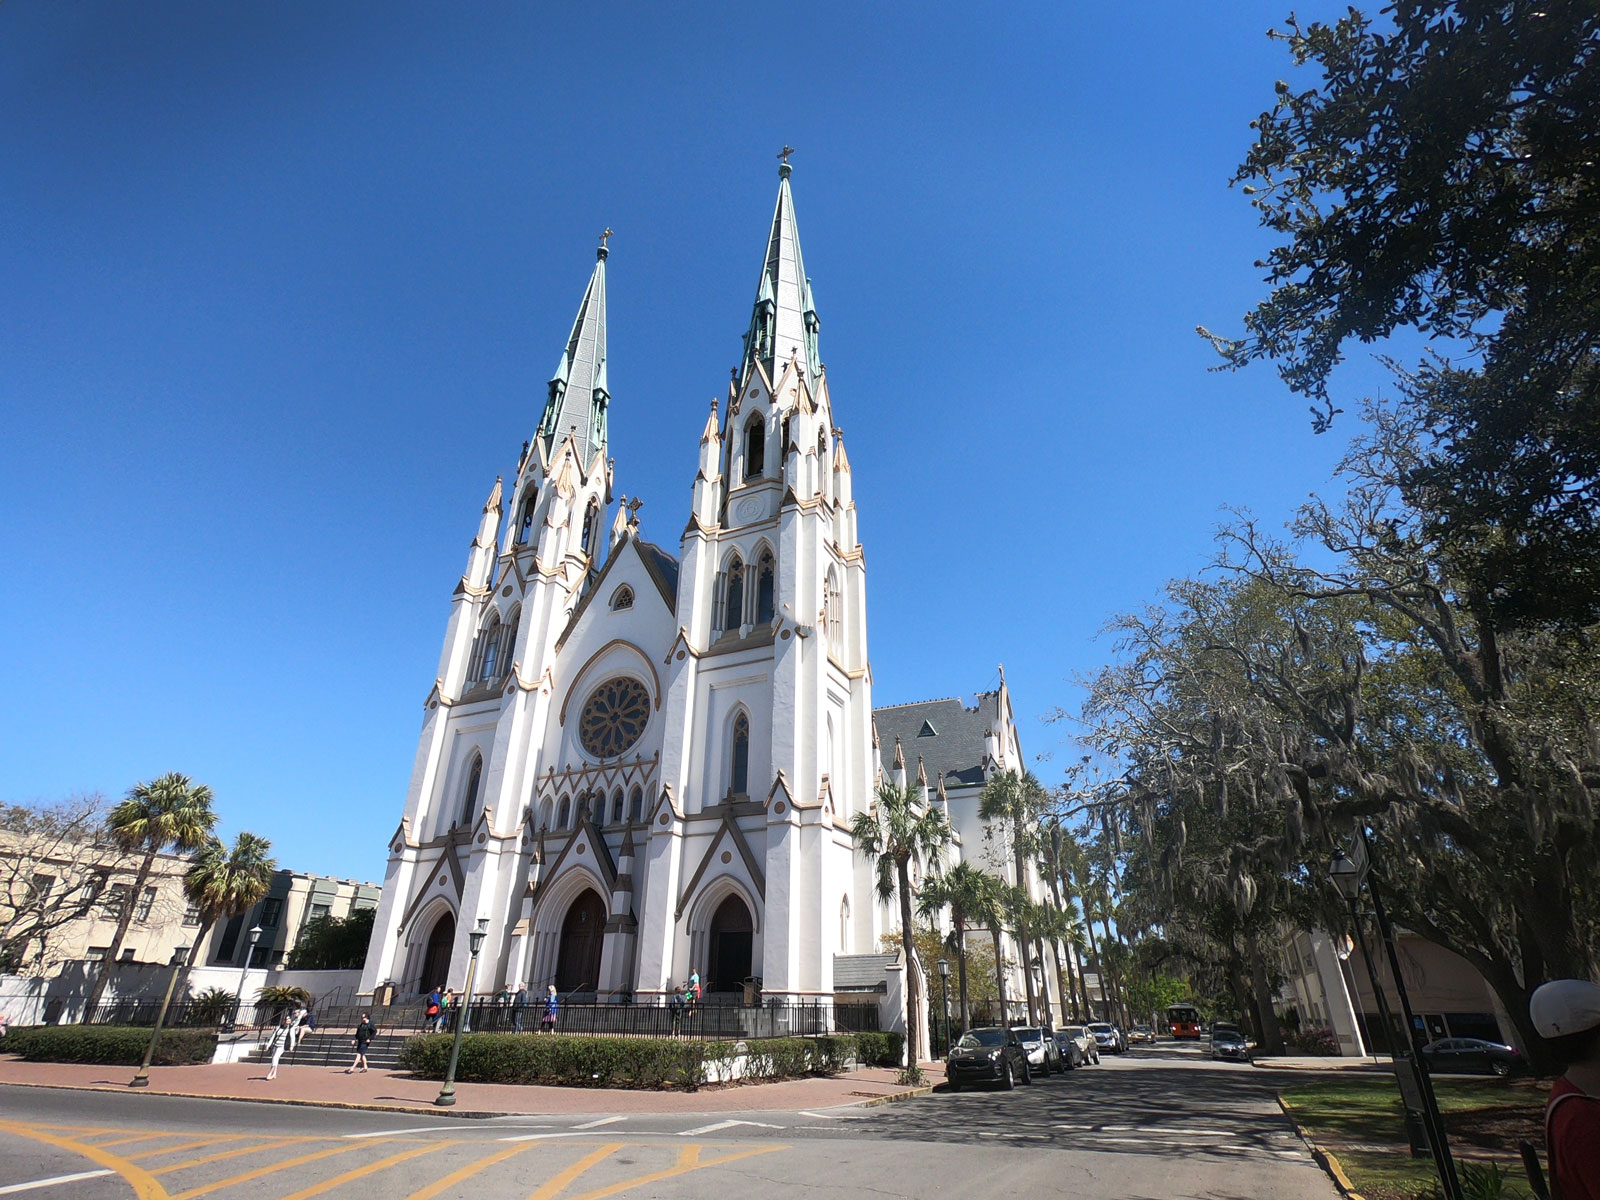 Cathedral of St John the Baptist in Savannah, Georgia